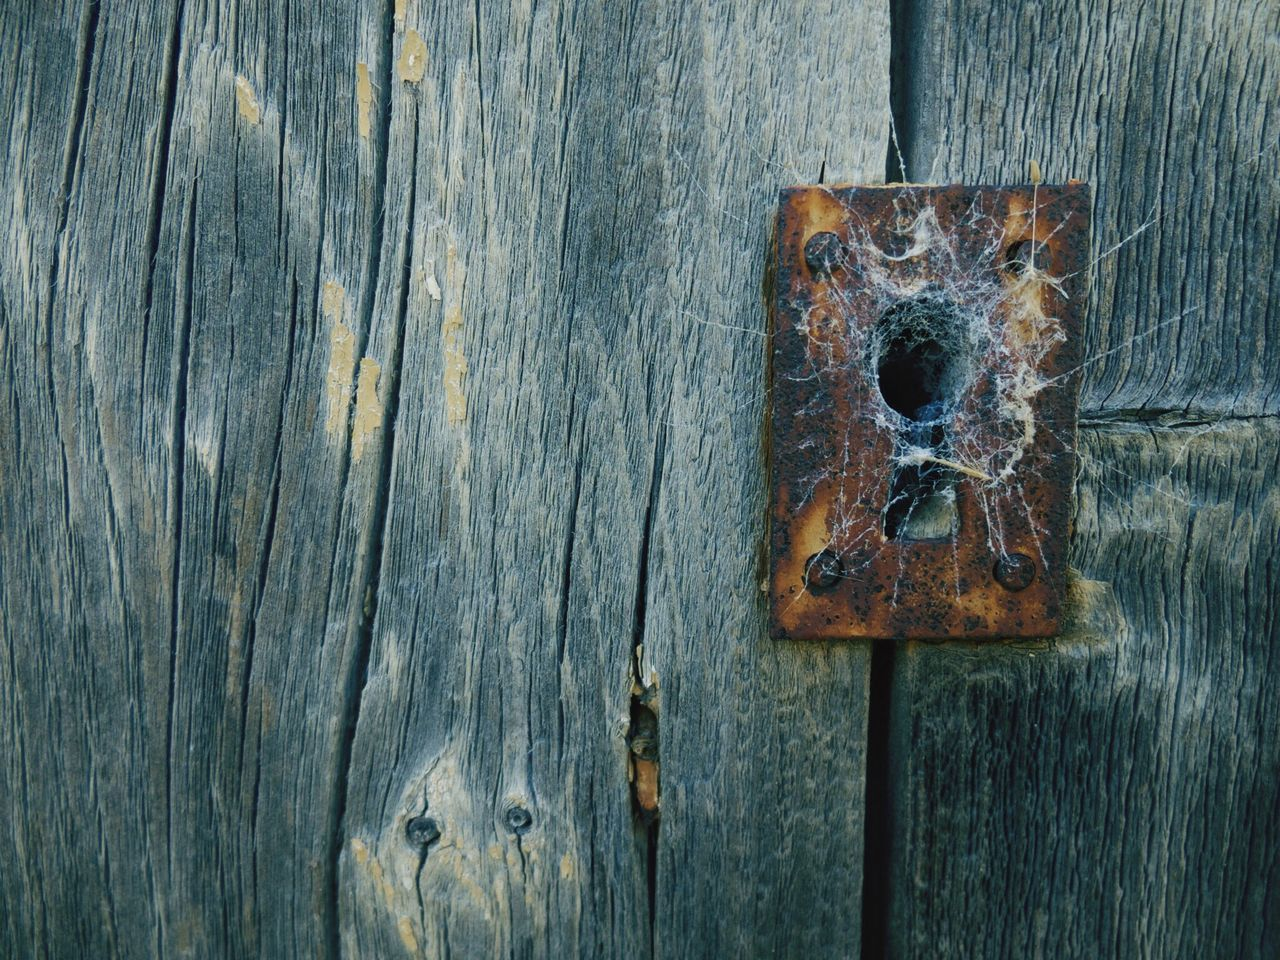 wood - material, metal, door, old, entrance, rusty, close-up, no people, weathered, safety, protection, security, day, lock, textured, outdoors, backgrounds, full frame, damaged, decline, deterioration, latch